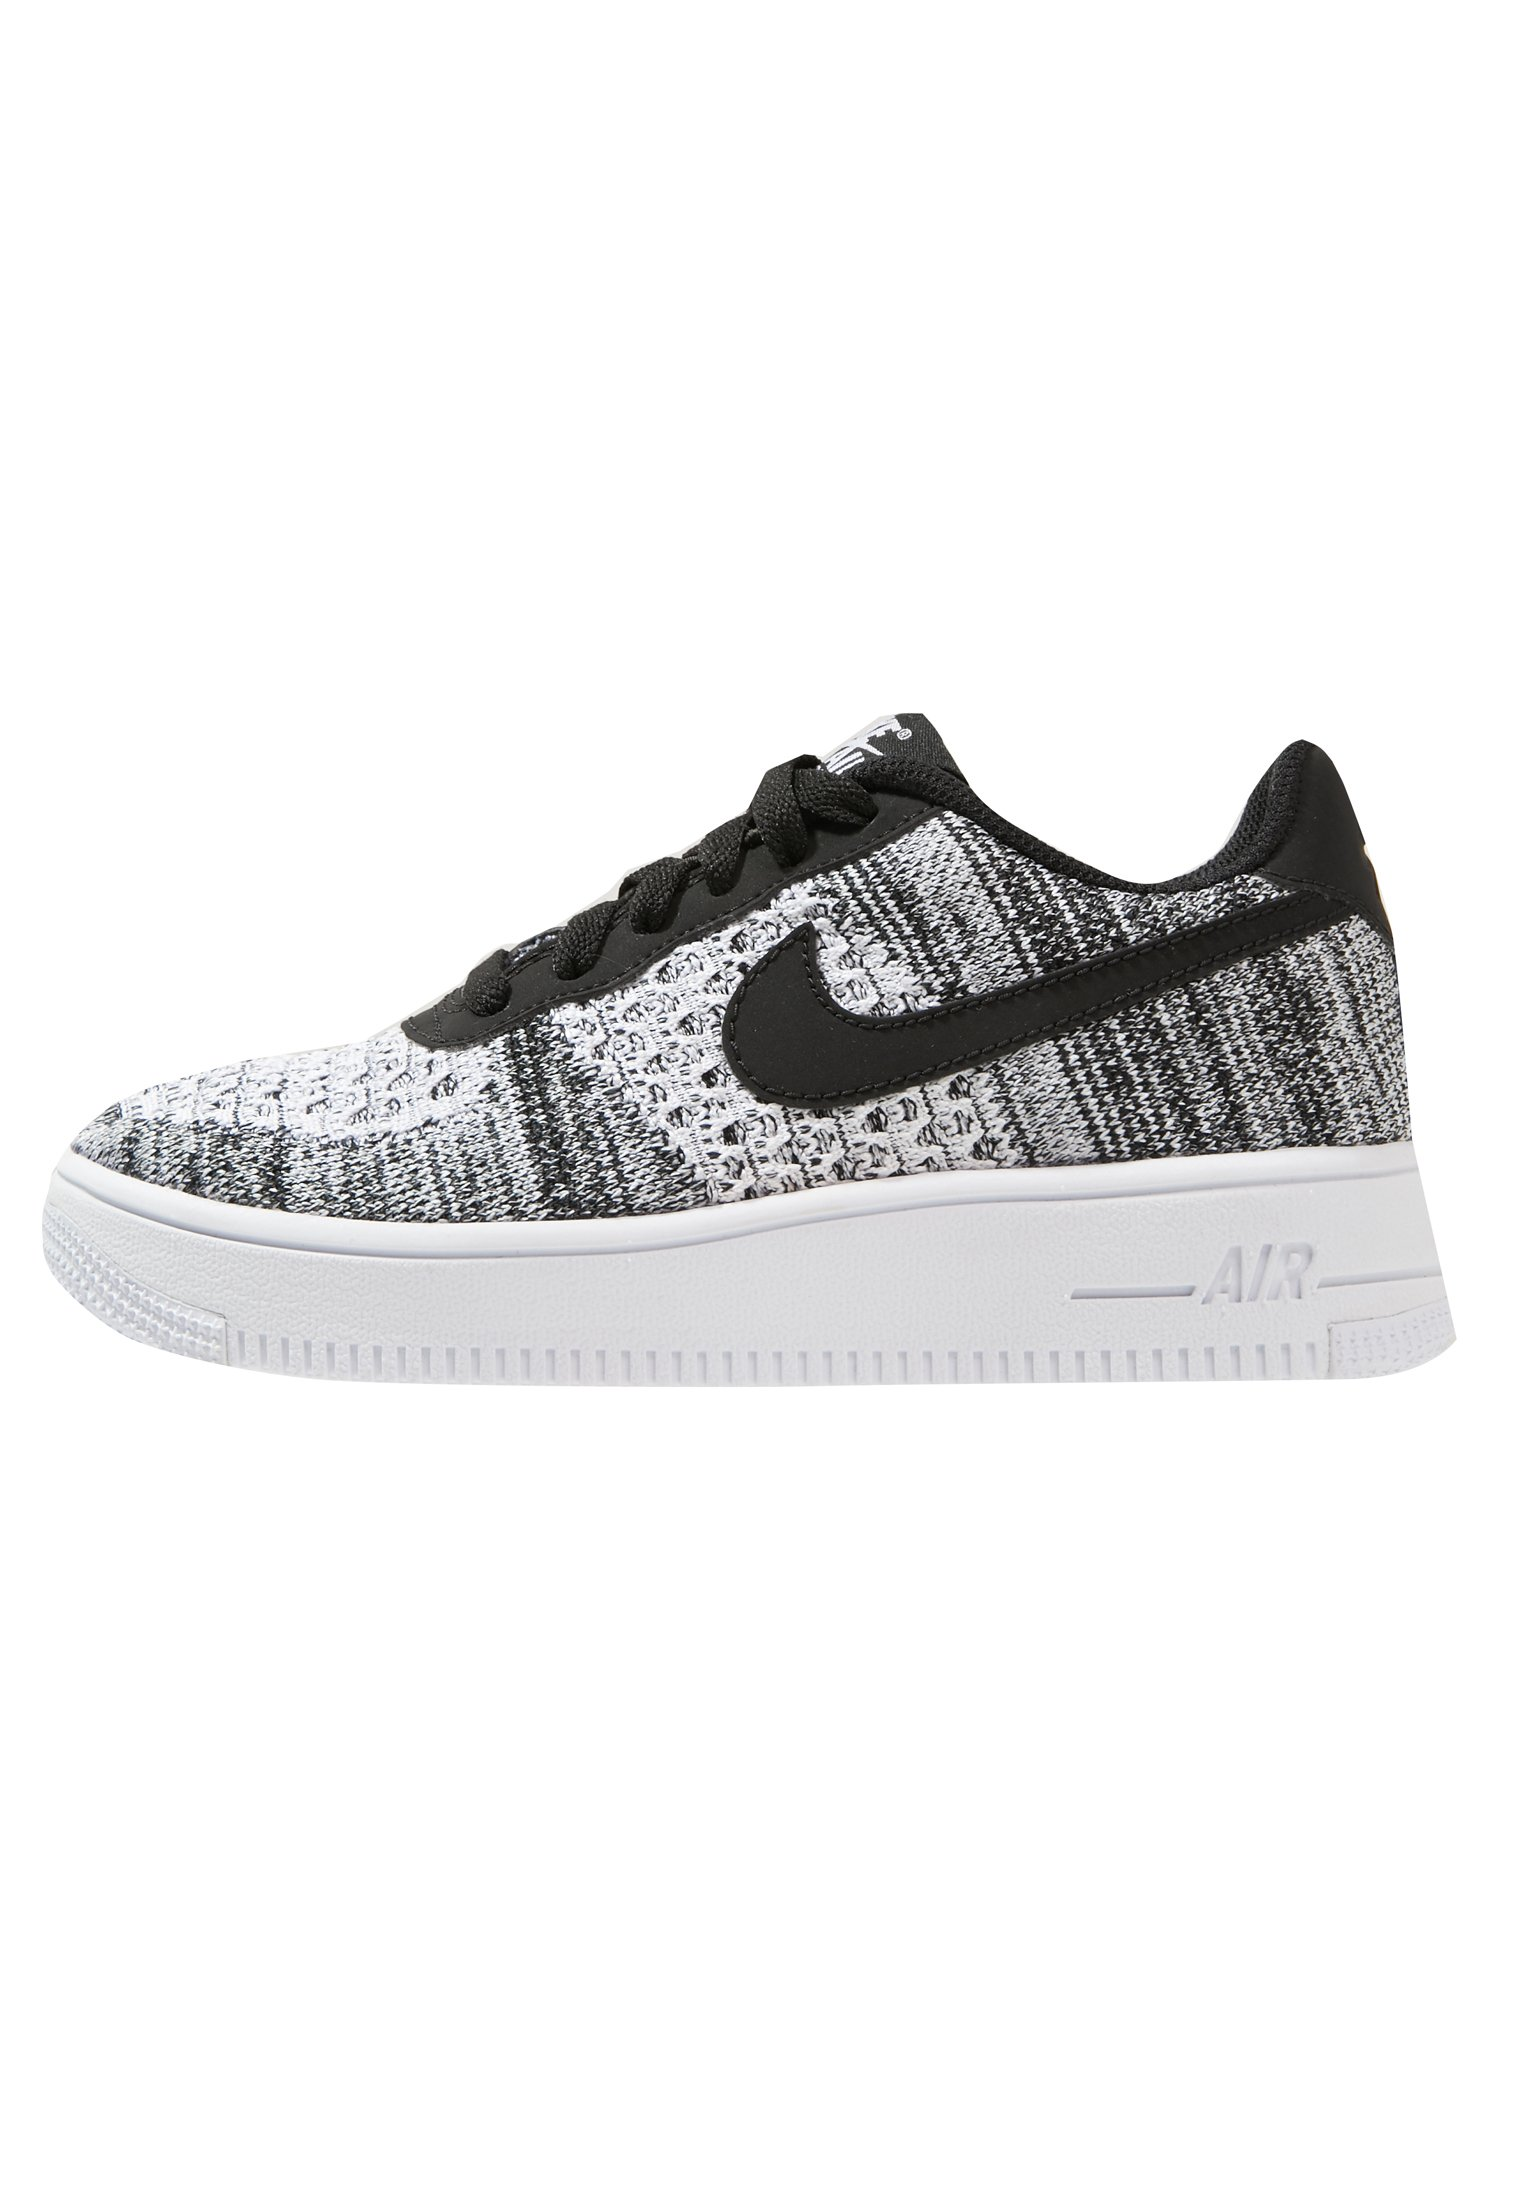 air force 1 flyknit uomo